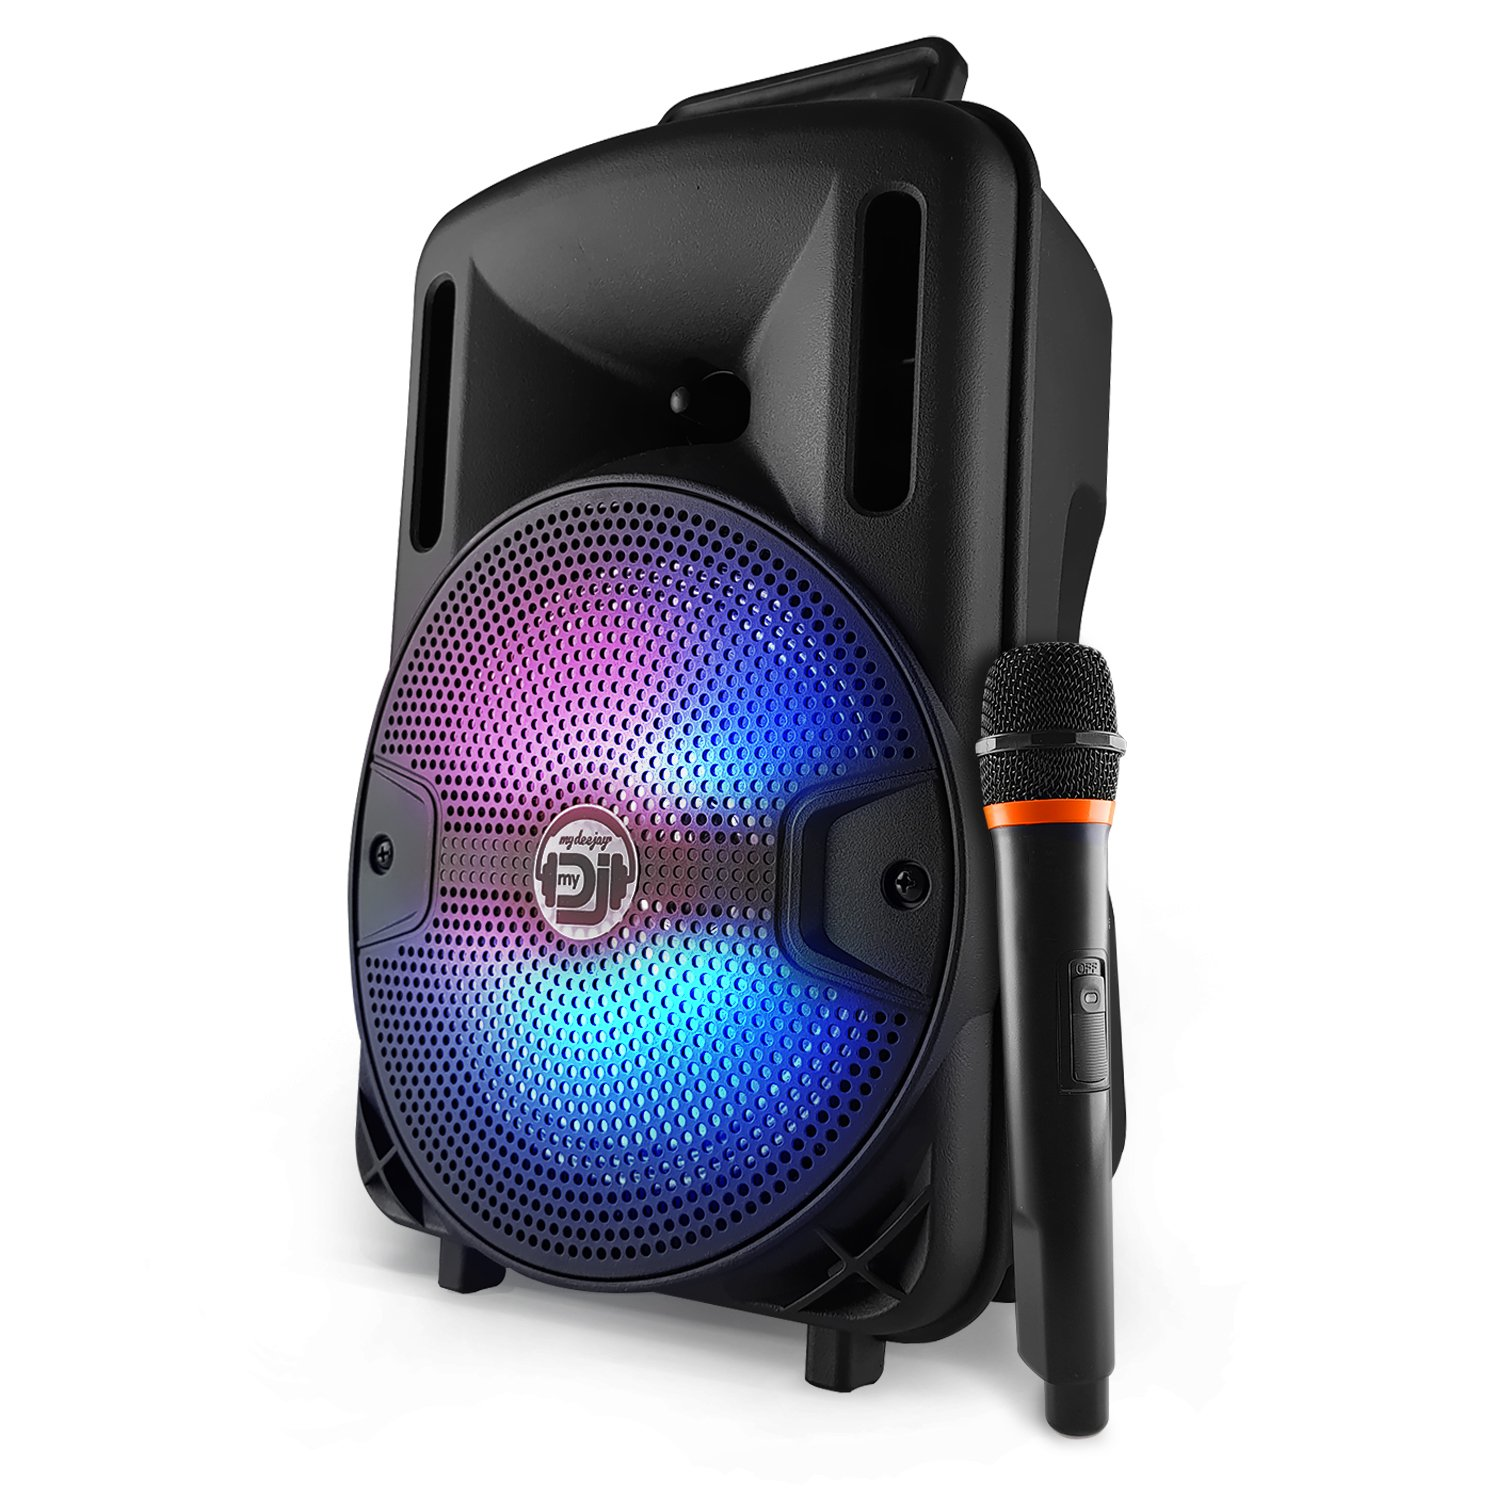 'Altoparlante batteria mobile Karaoke 8 400 W a LED USB/SD/Bluetooth + Micro + Telecomando + Cavo PC MyDJ